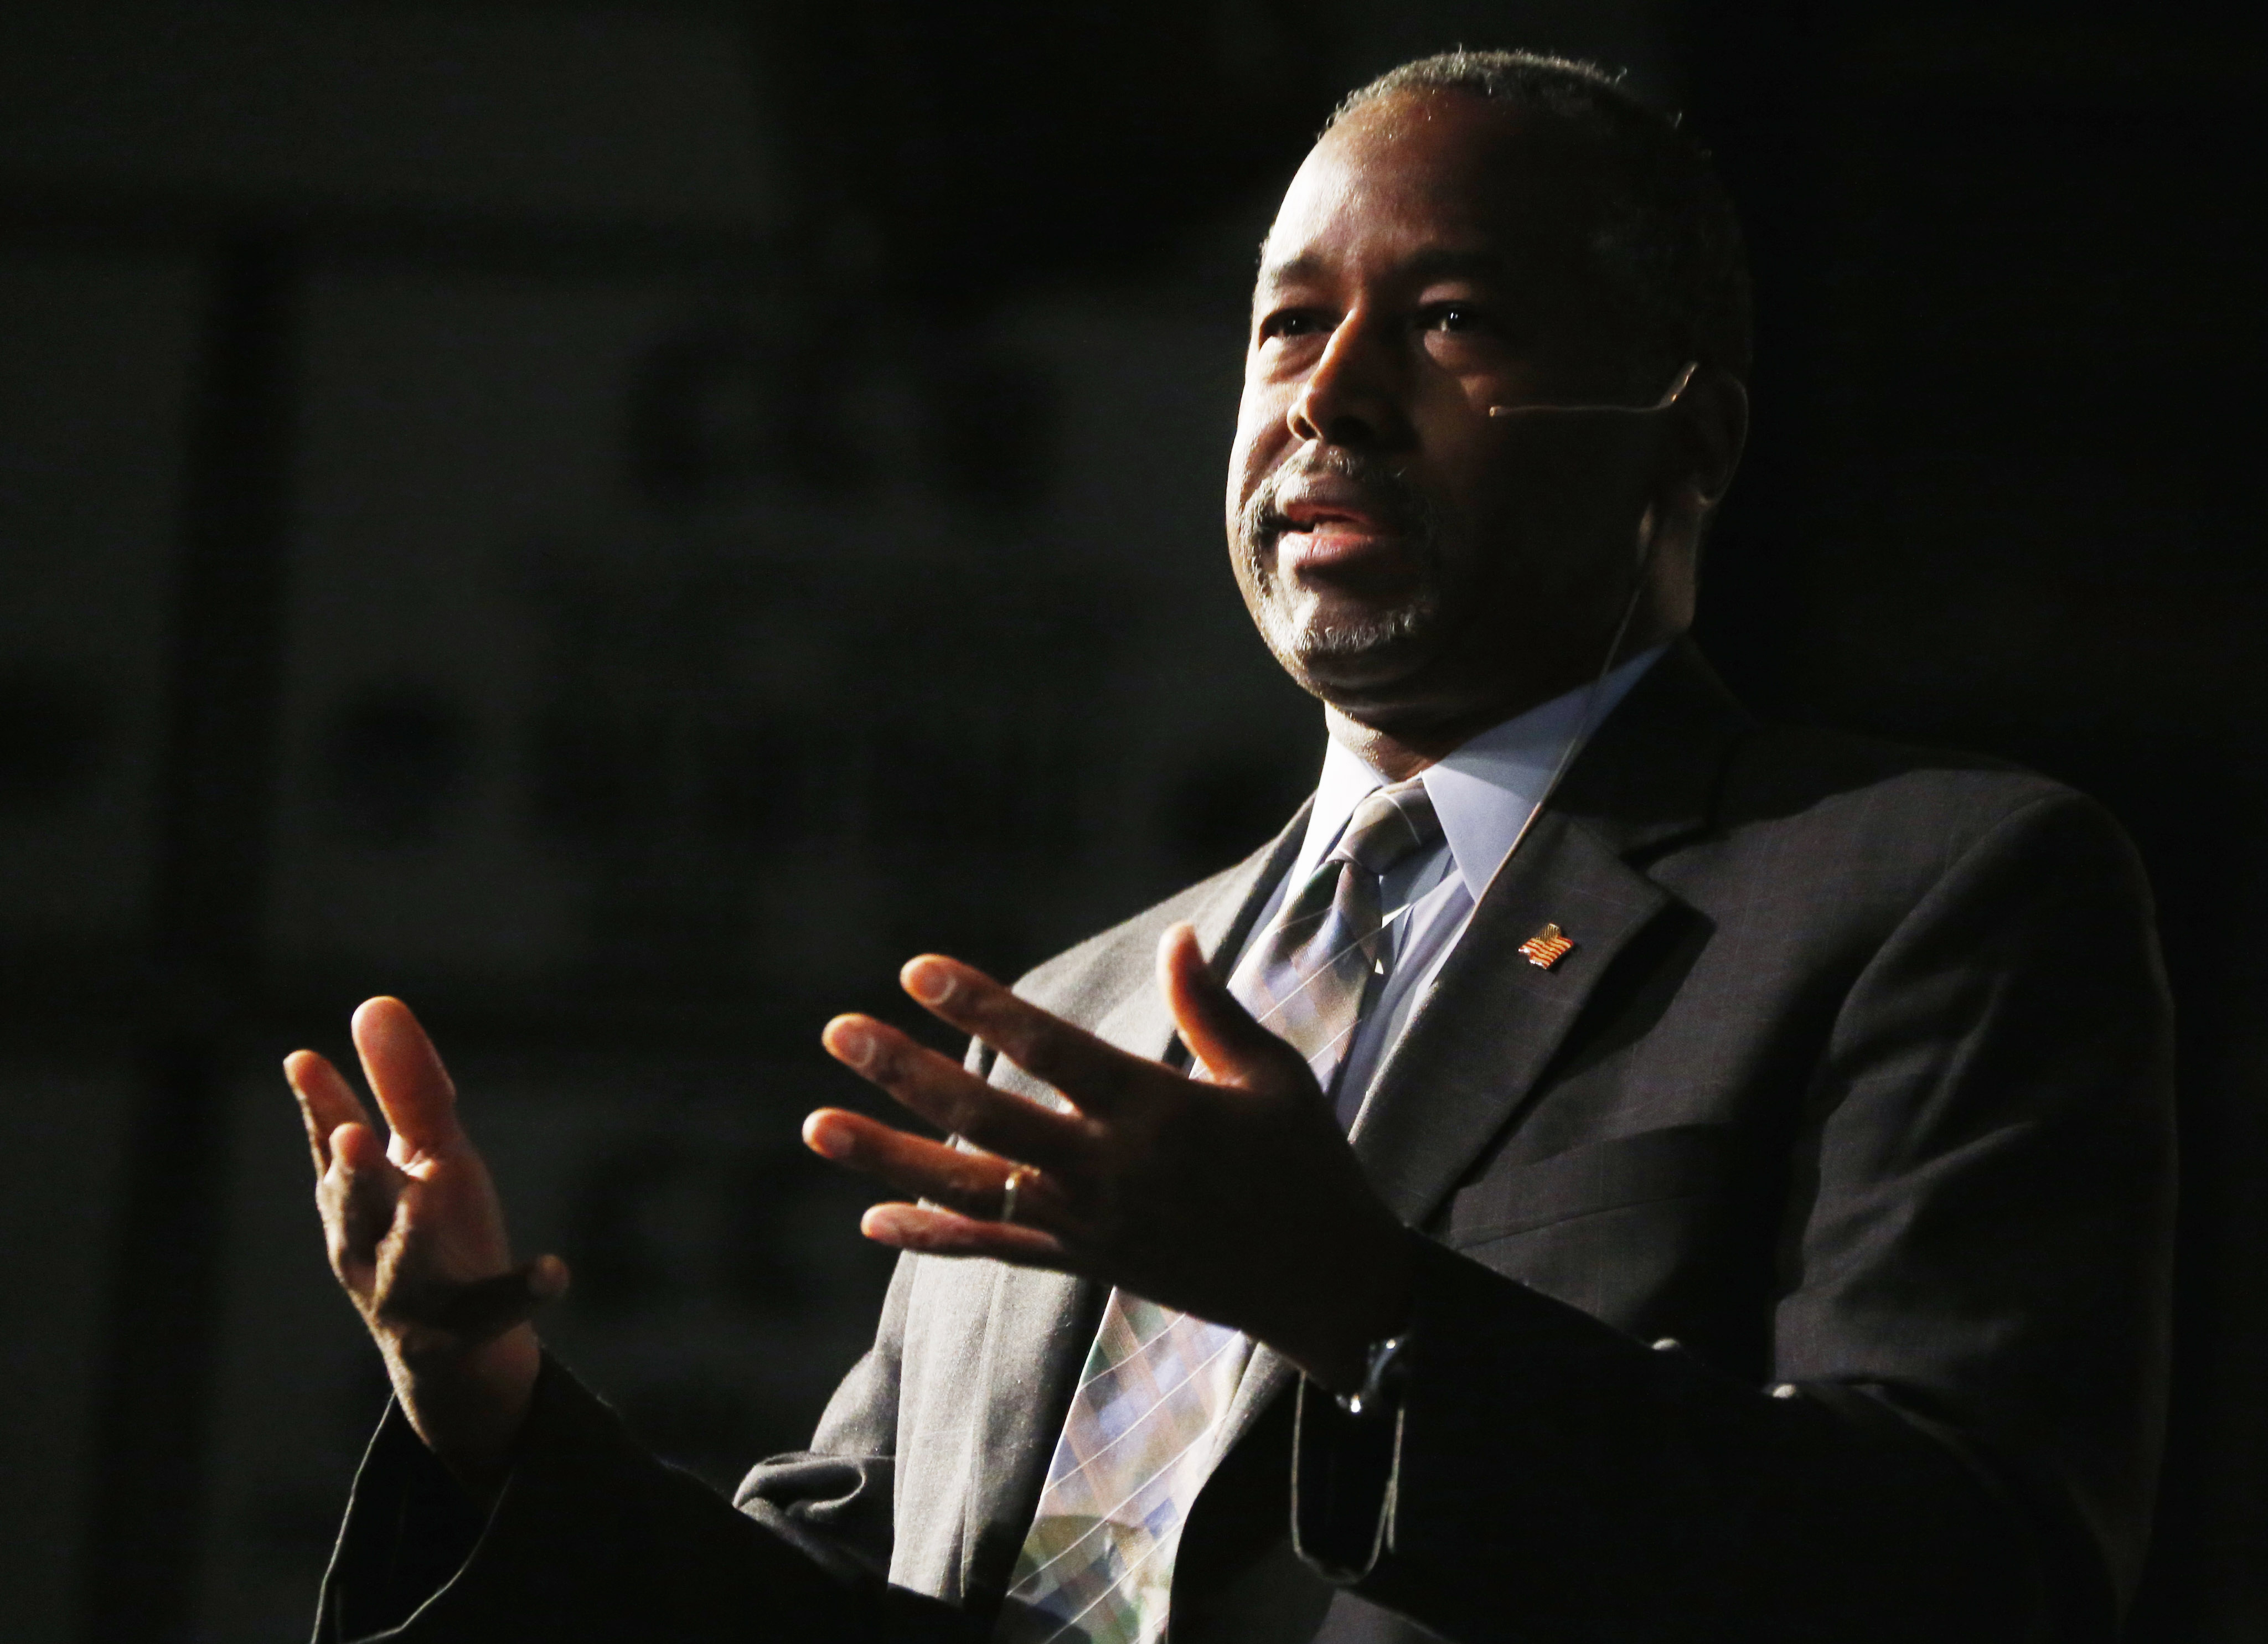 Report: GOP's Carson says he never received West Point scholarship